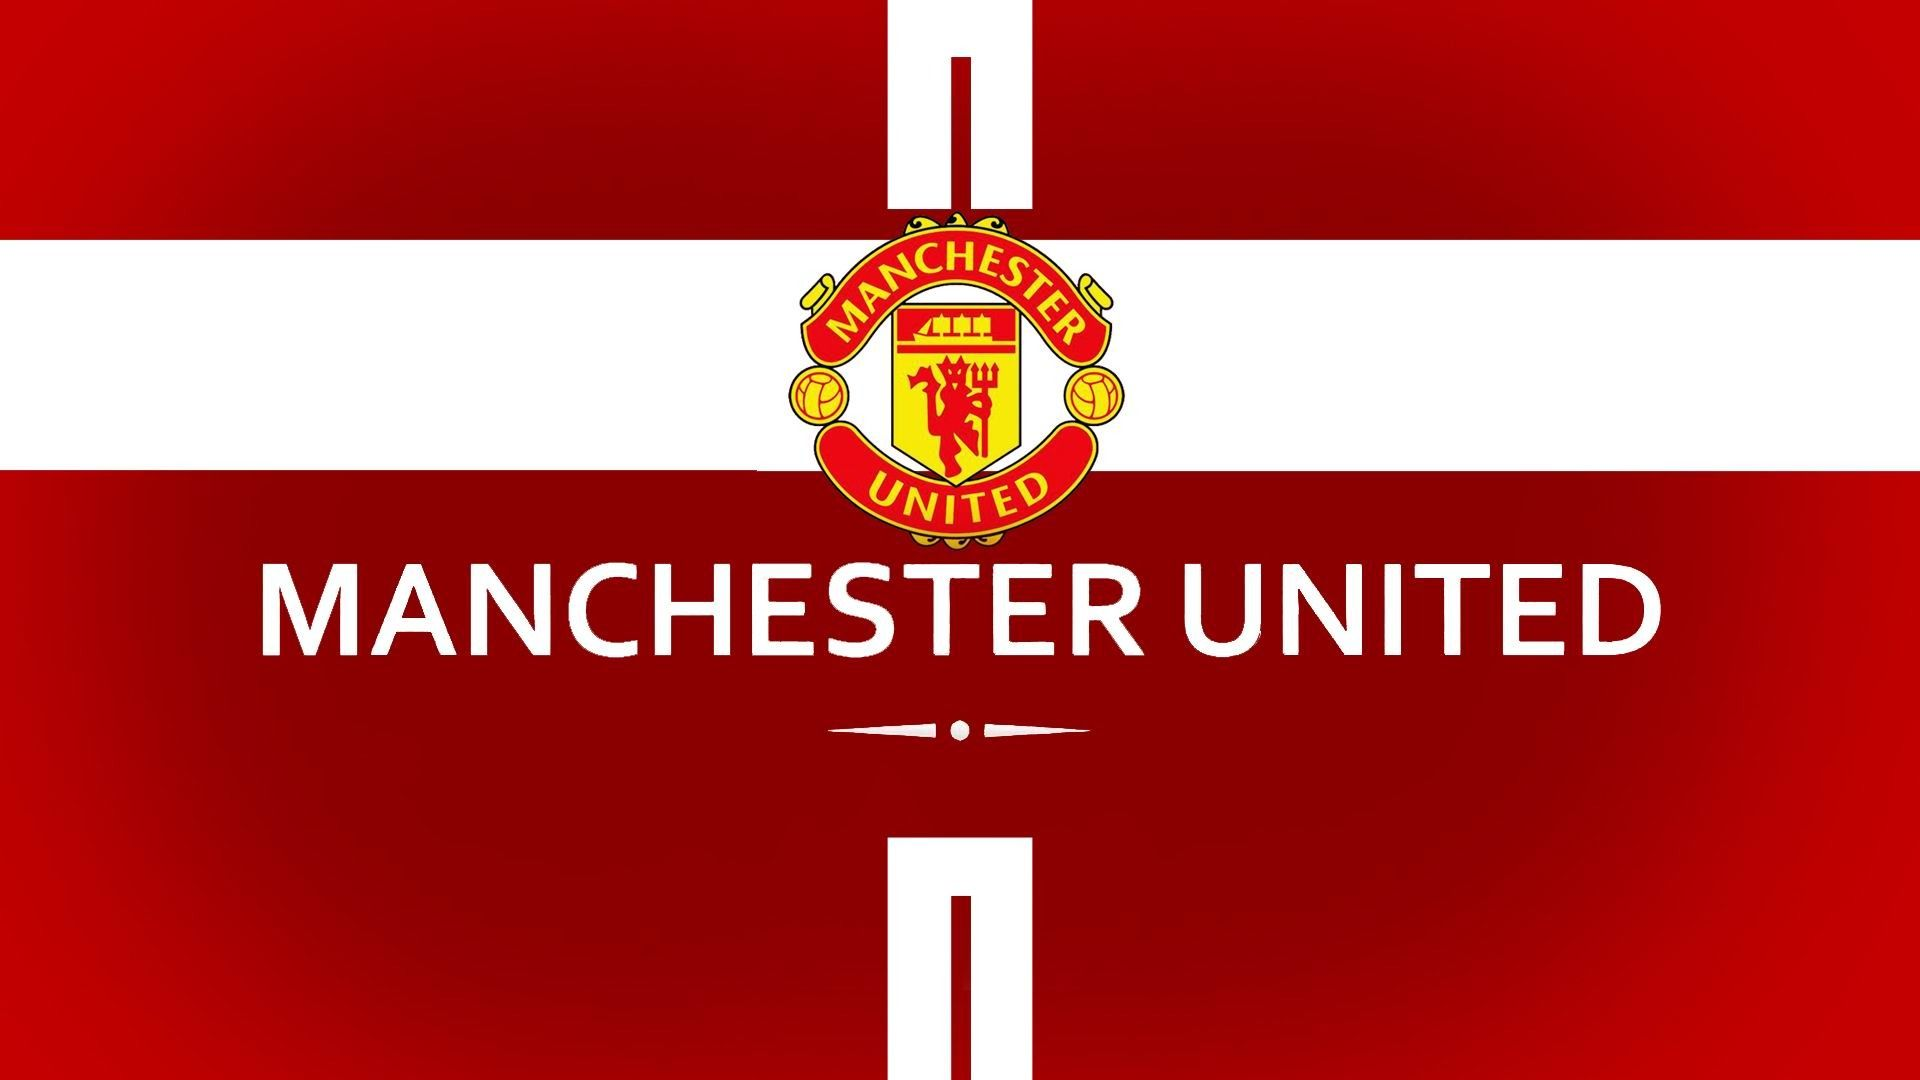 List of Beautiful Manchester United Wallpapers Hd Wallpaper Manchester United